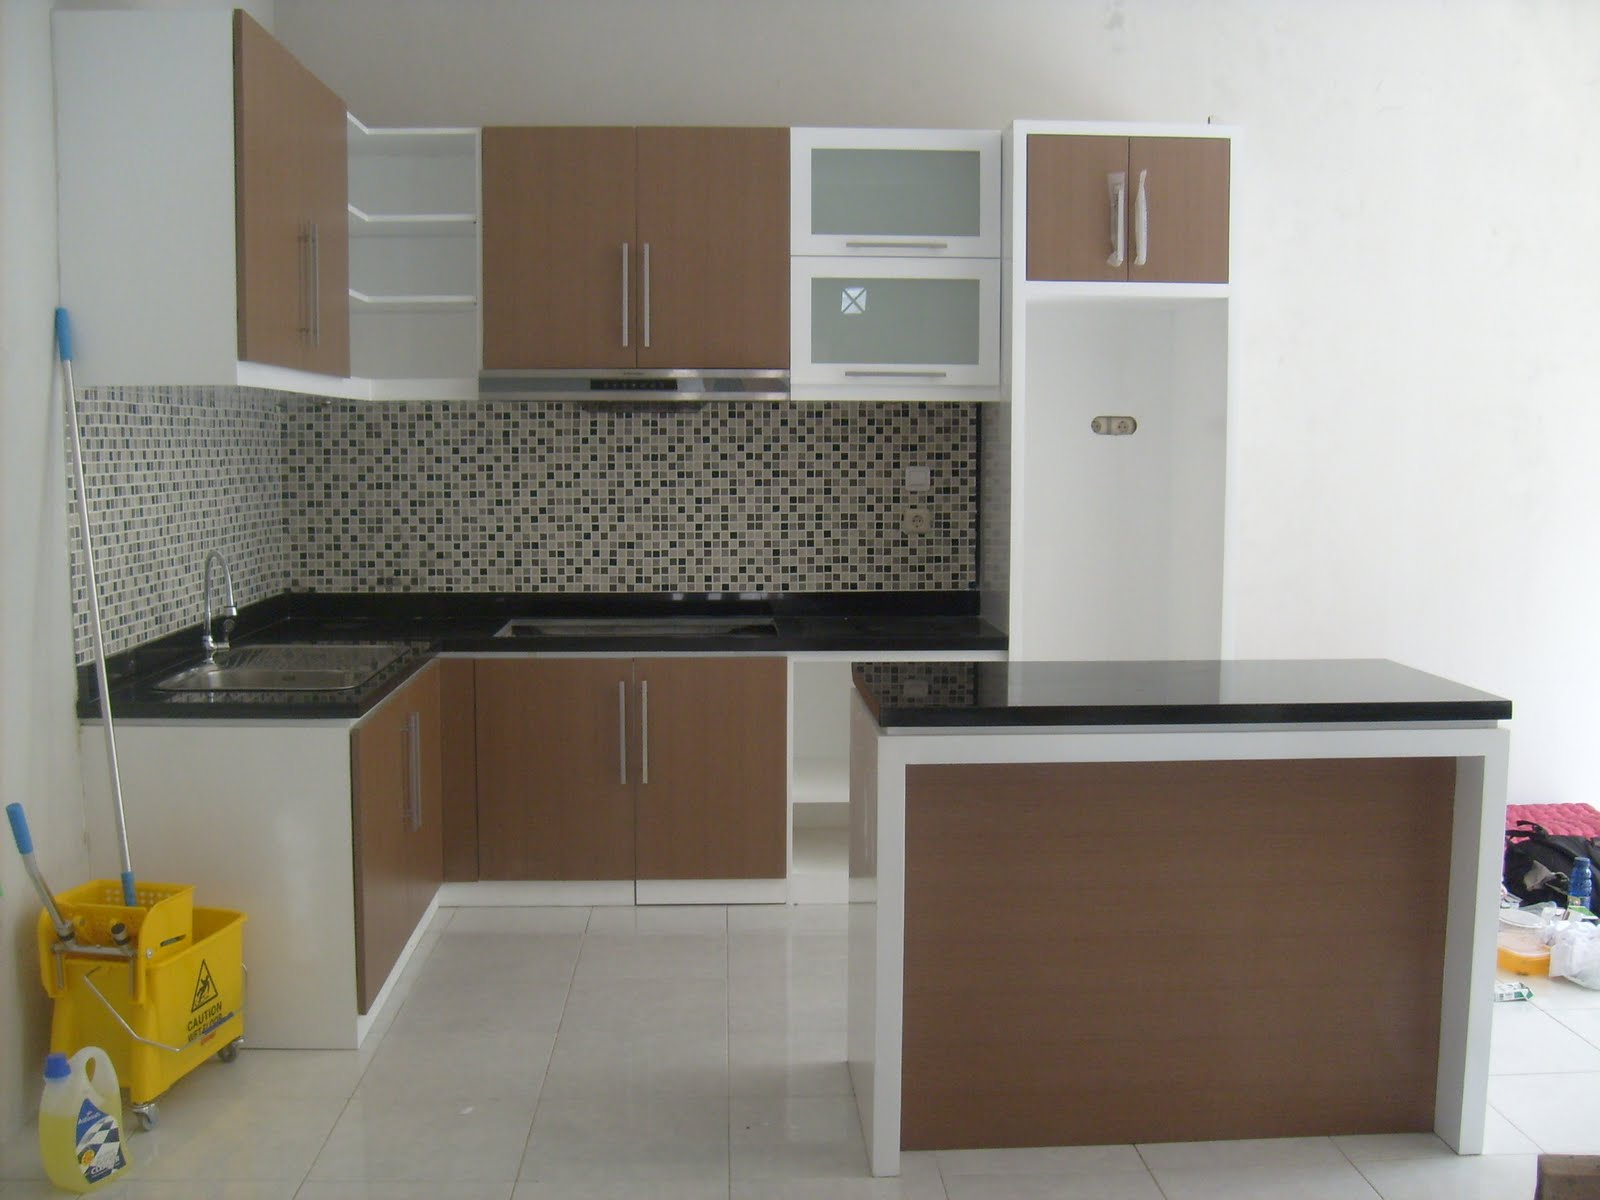 The type of wood for the kitchen set lunarfurniture com lunarfurniture com